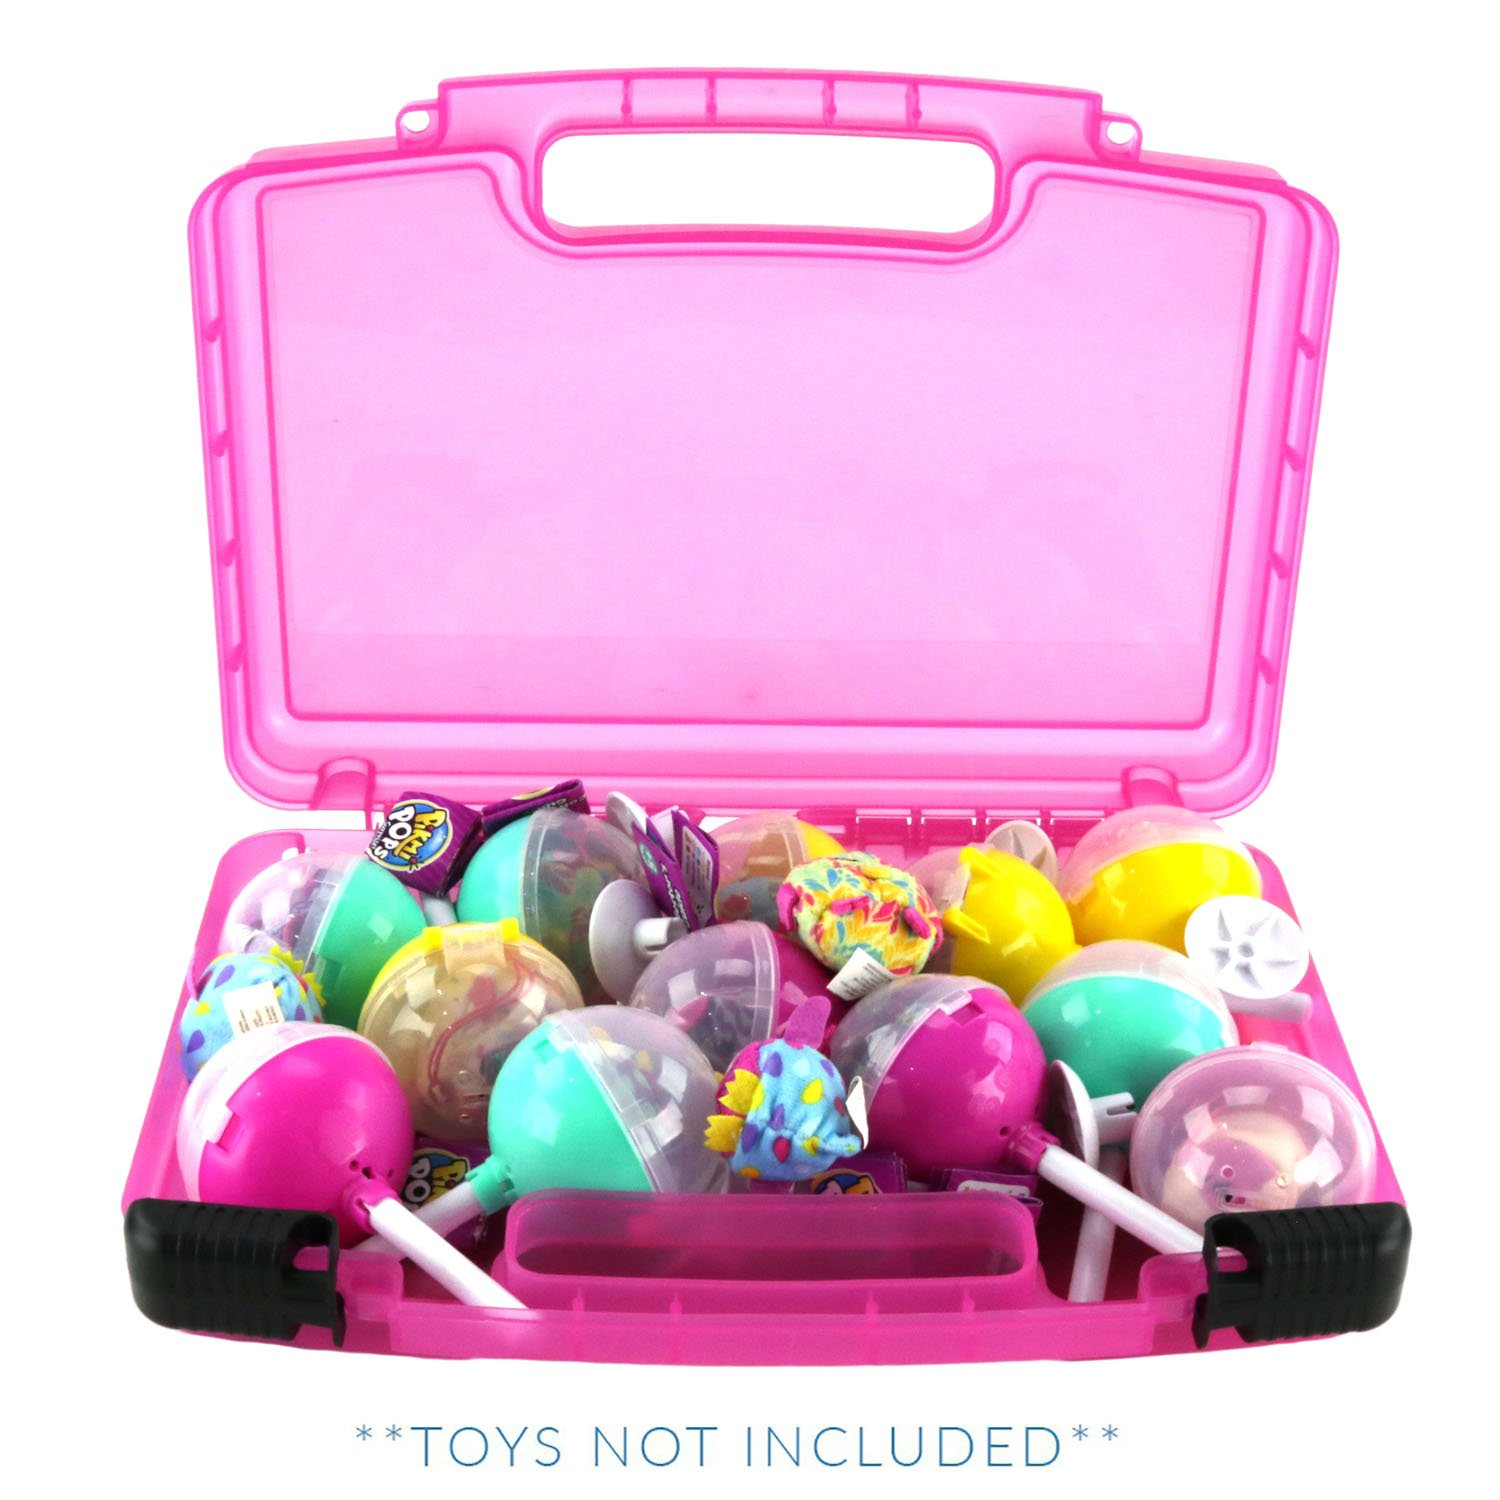 Pikmi Pops Case, Toy Storage Carrying Box. Figures Playset Organizer. Accessories for Kids by LMB Life Made Better